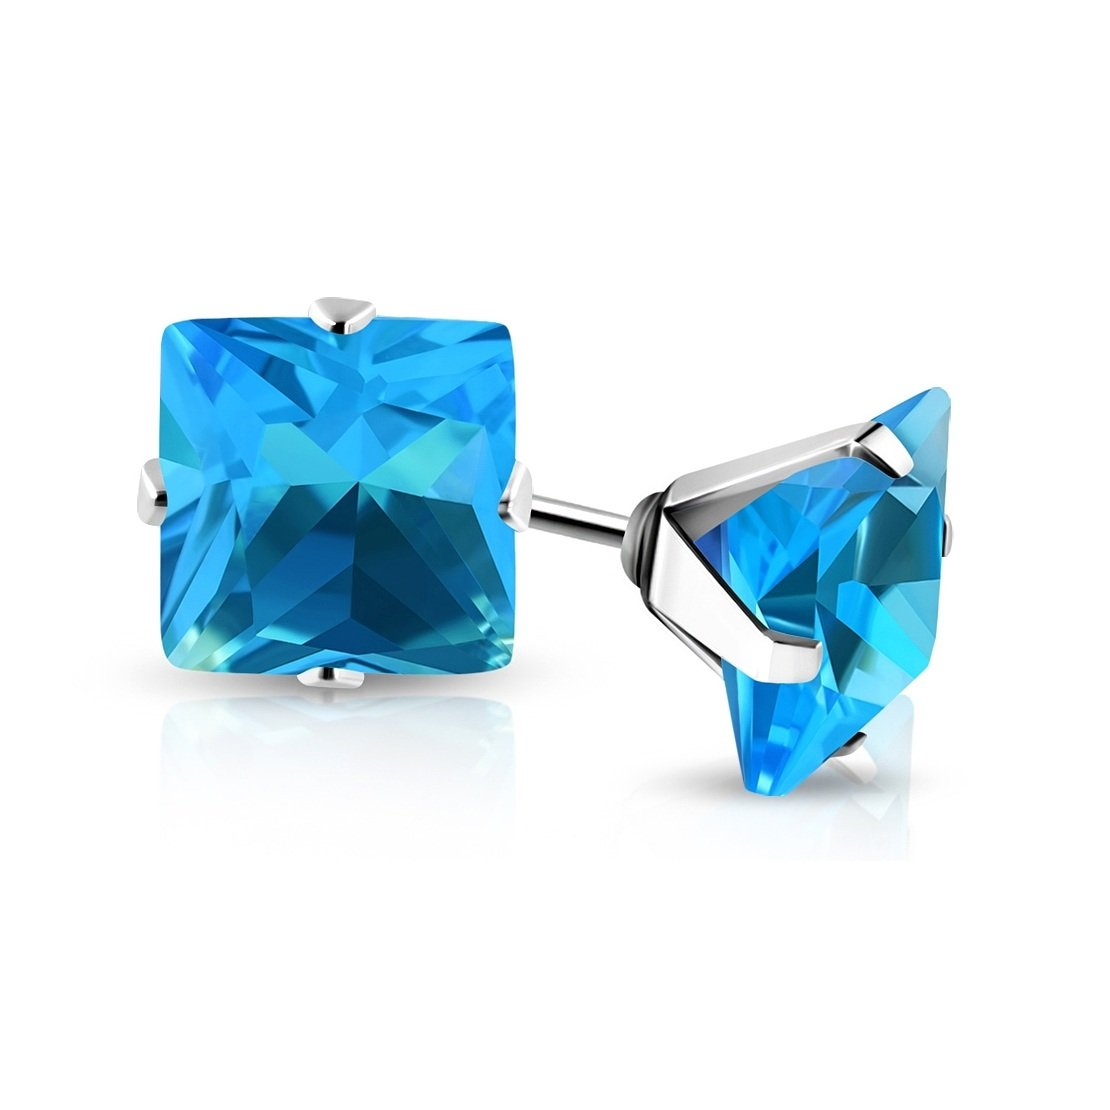 pair Stainless Steel Prong-Set Square Stud Earrings with Sky Blue// Aquamarine CZ